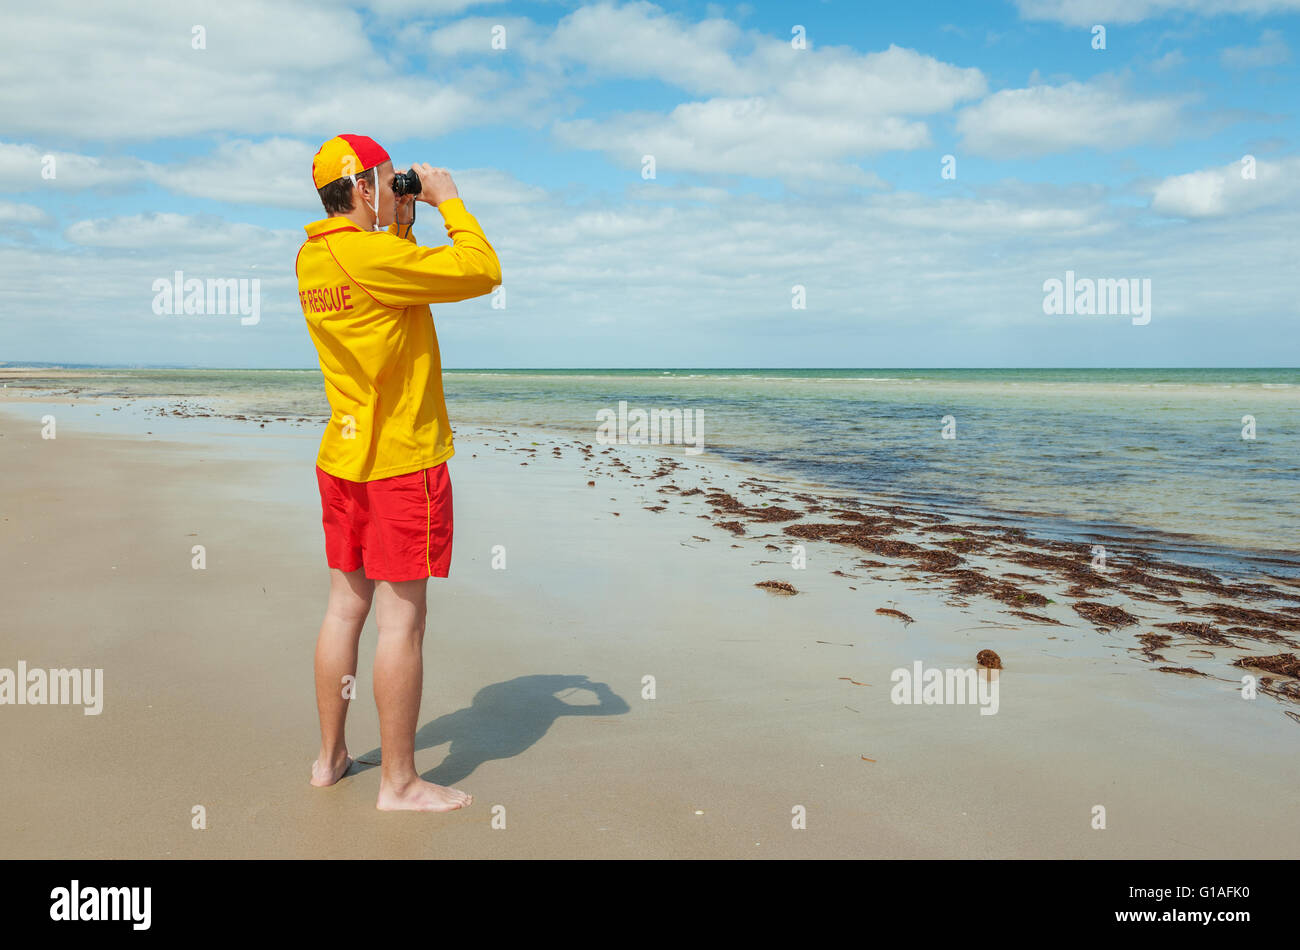 young man  life saver  watching the situation on the sea - Stock Image